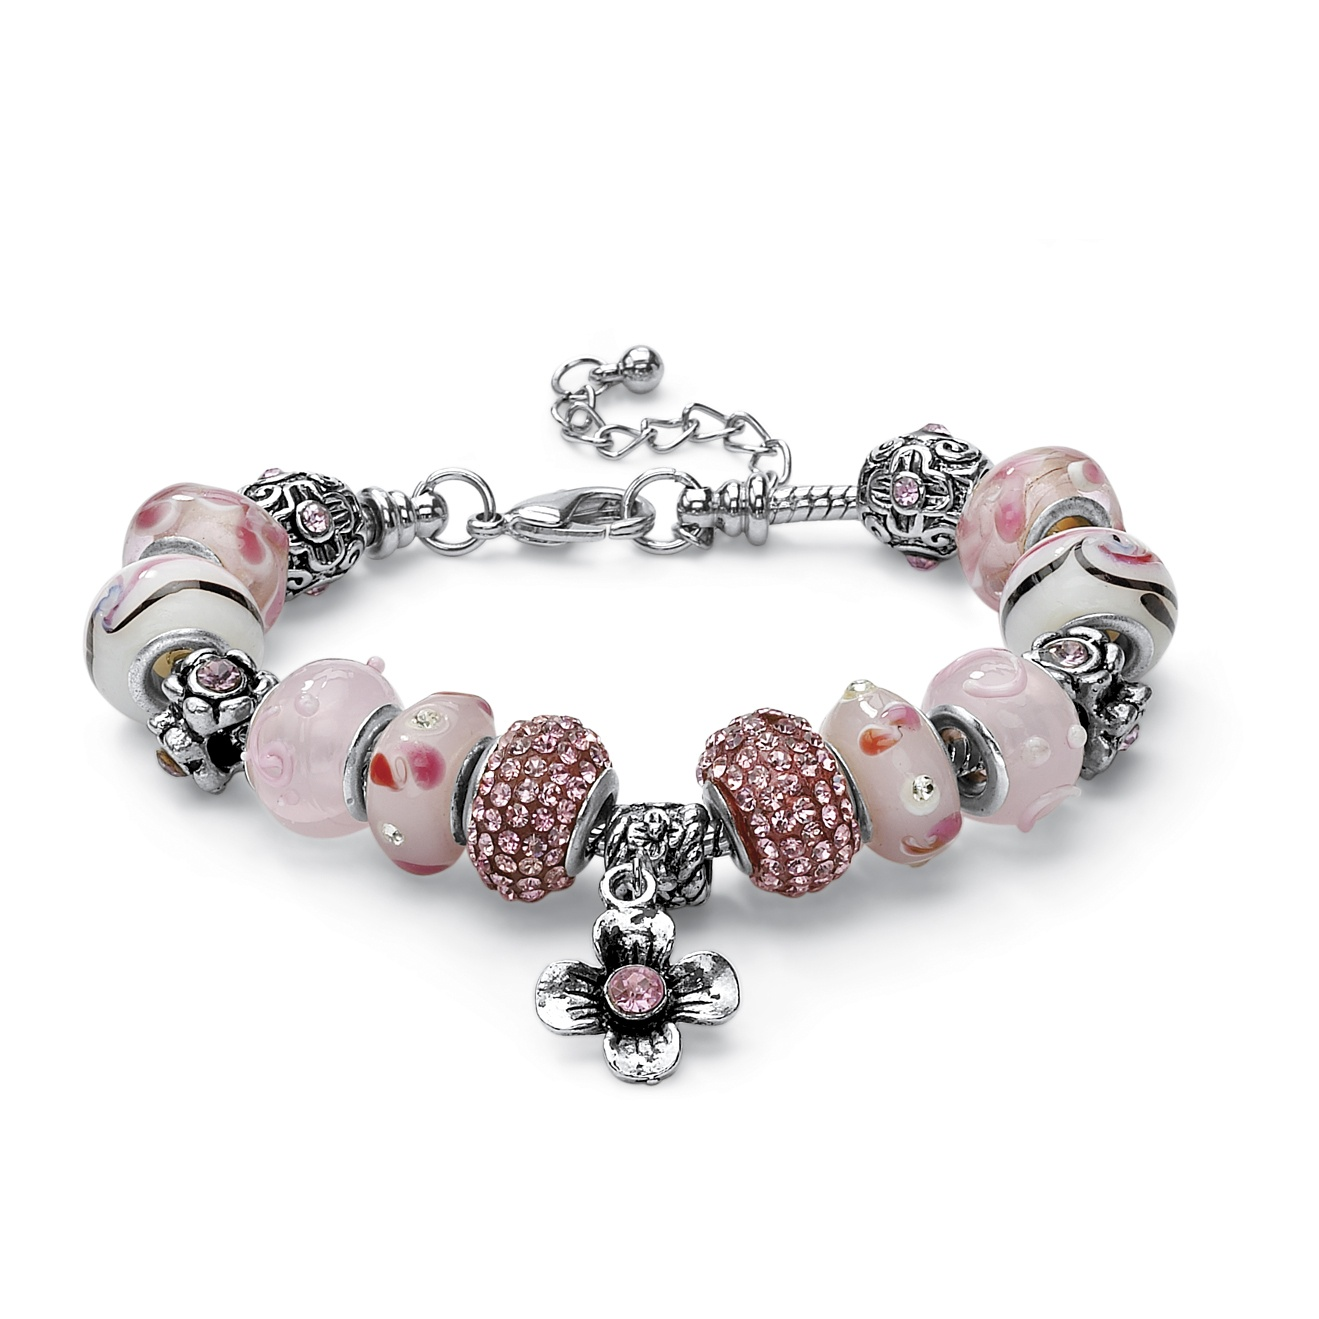 Round Pink Crystal Silvertone Bali-Style Beaded Charm and Spacer Bracelet 8""